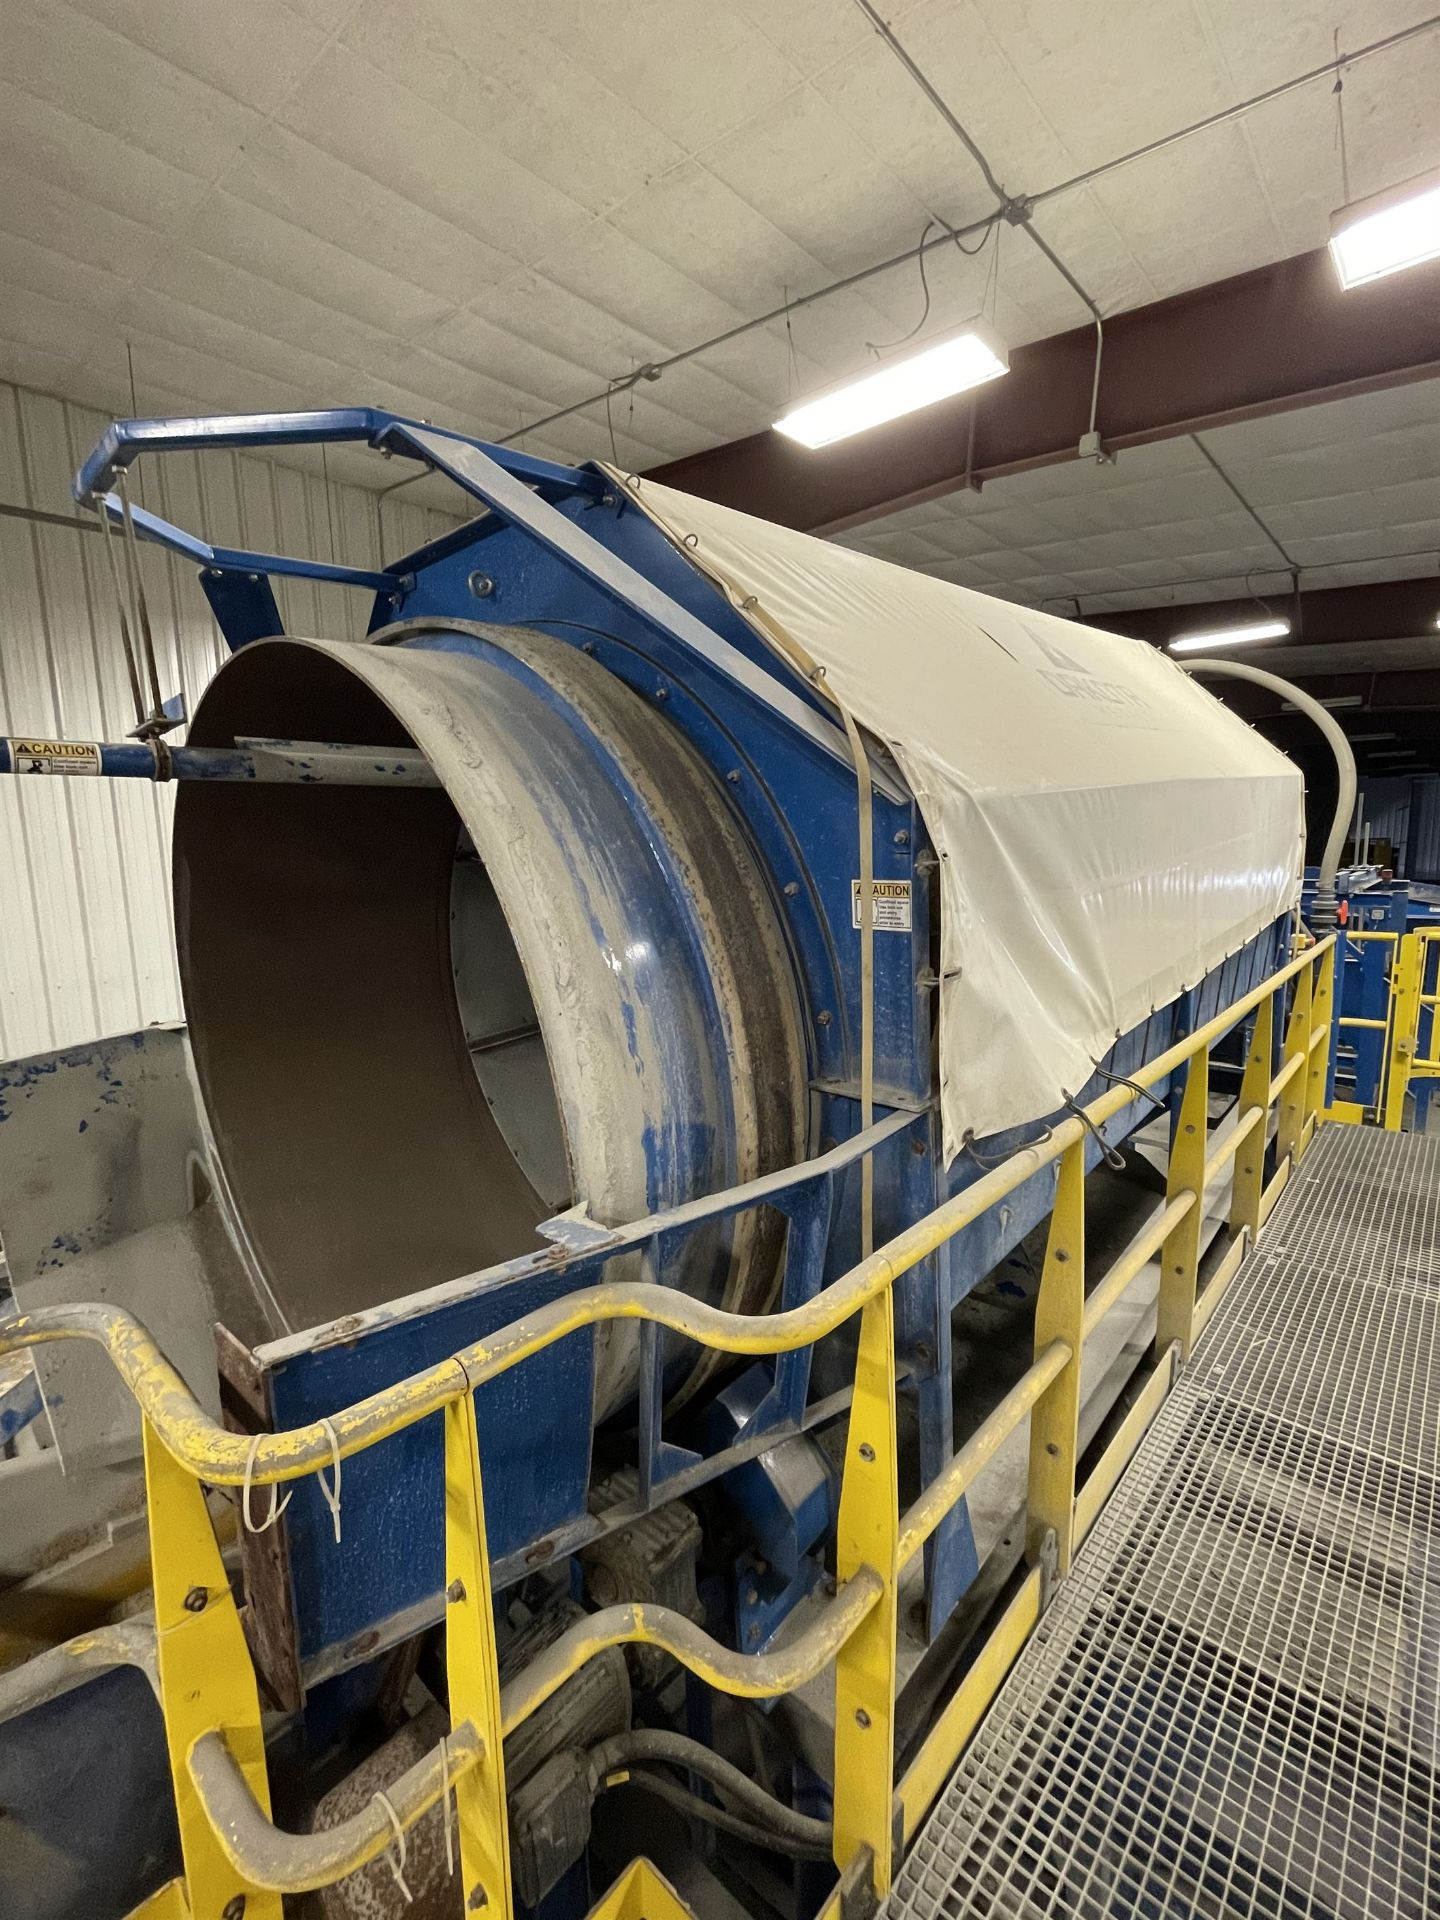 2015 LUBO SYSTEMS WASHING DRUM 1800x5000 Rotary Washing Drum, s/n 800108-0160, 1.8 m Drum - Image 5 of 6